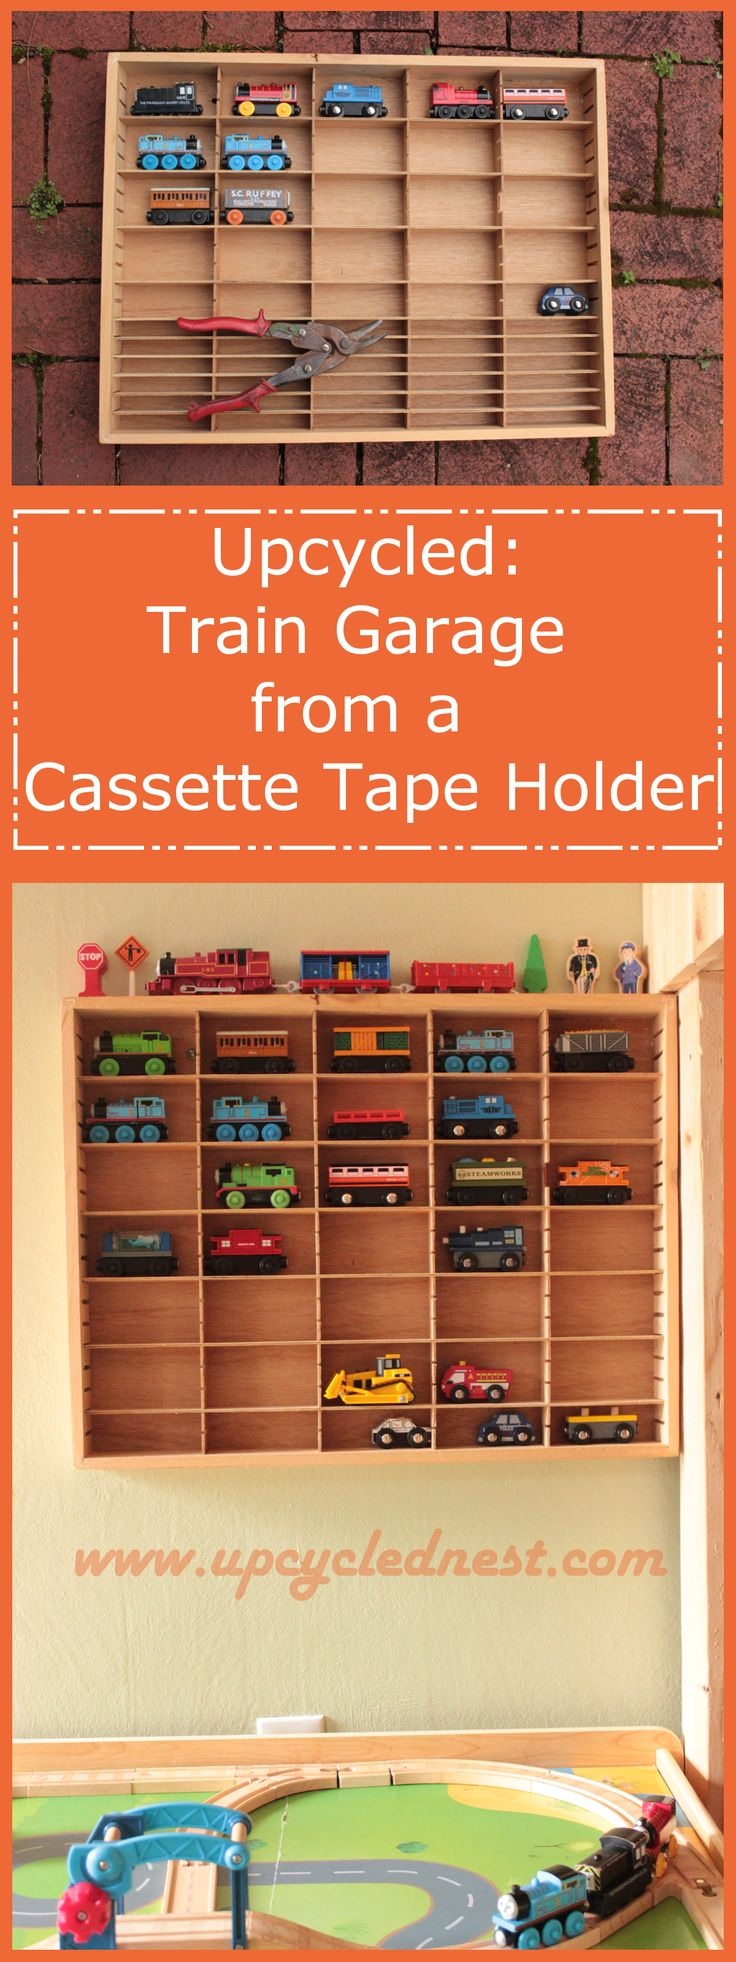 Upcycled: Train Garage from a Cassette Tape Holder